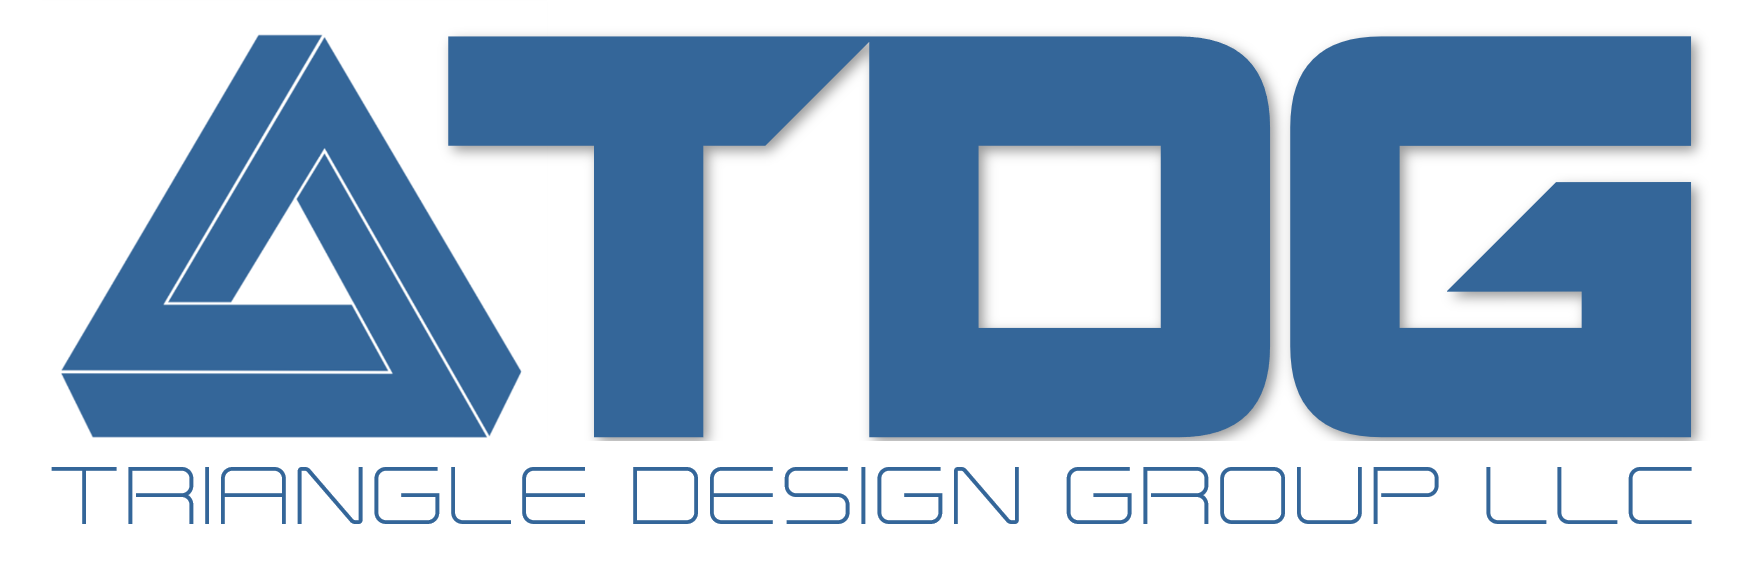 Triangle Design Group llc